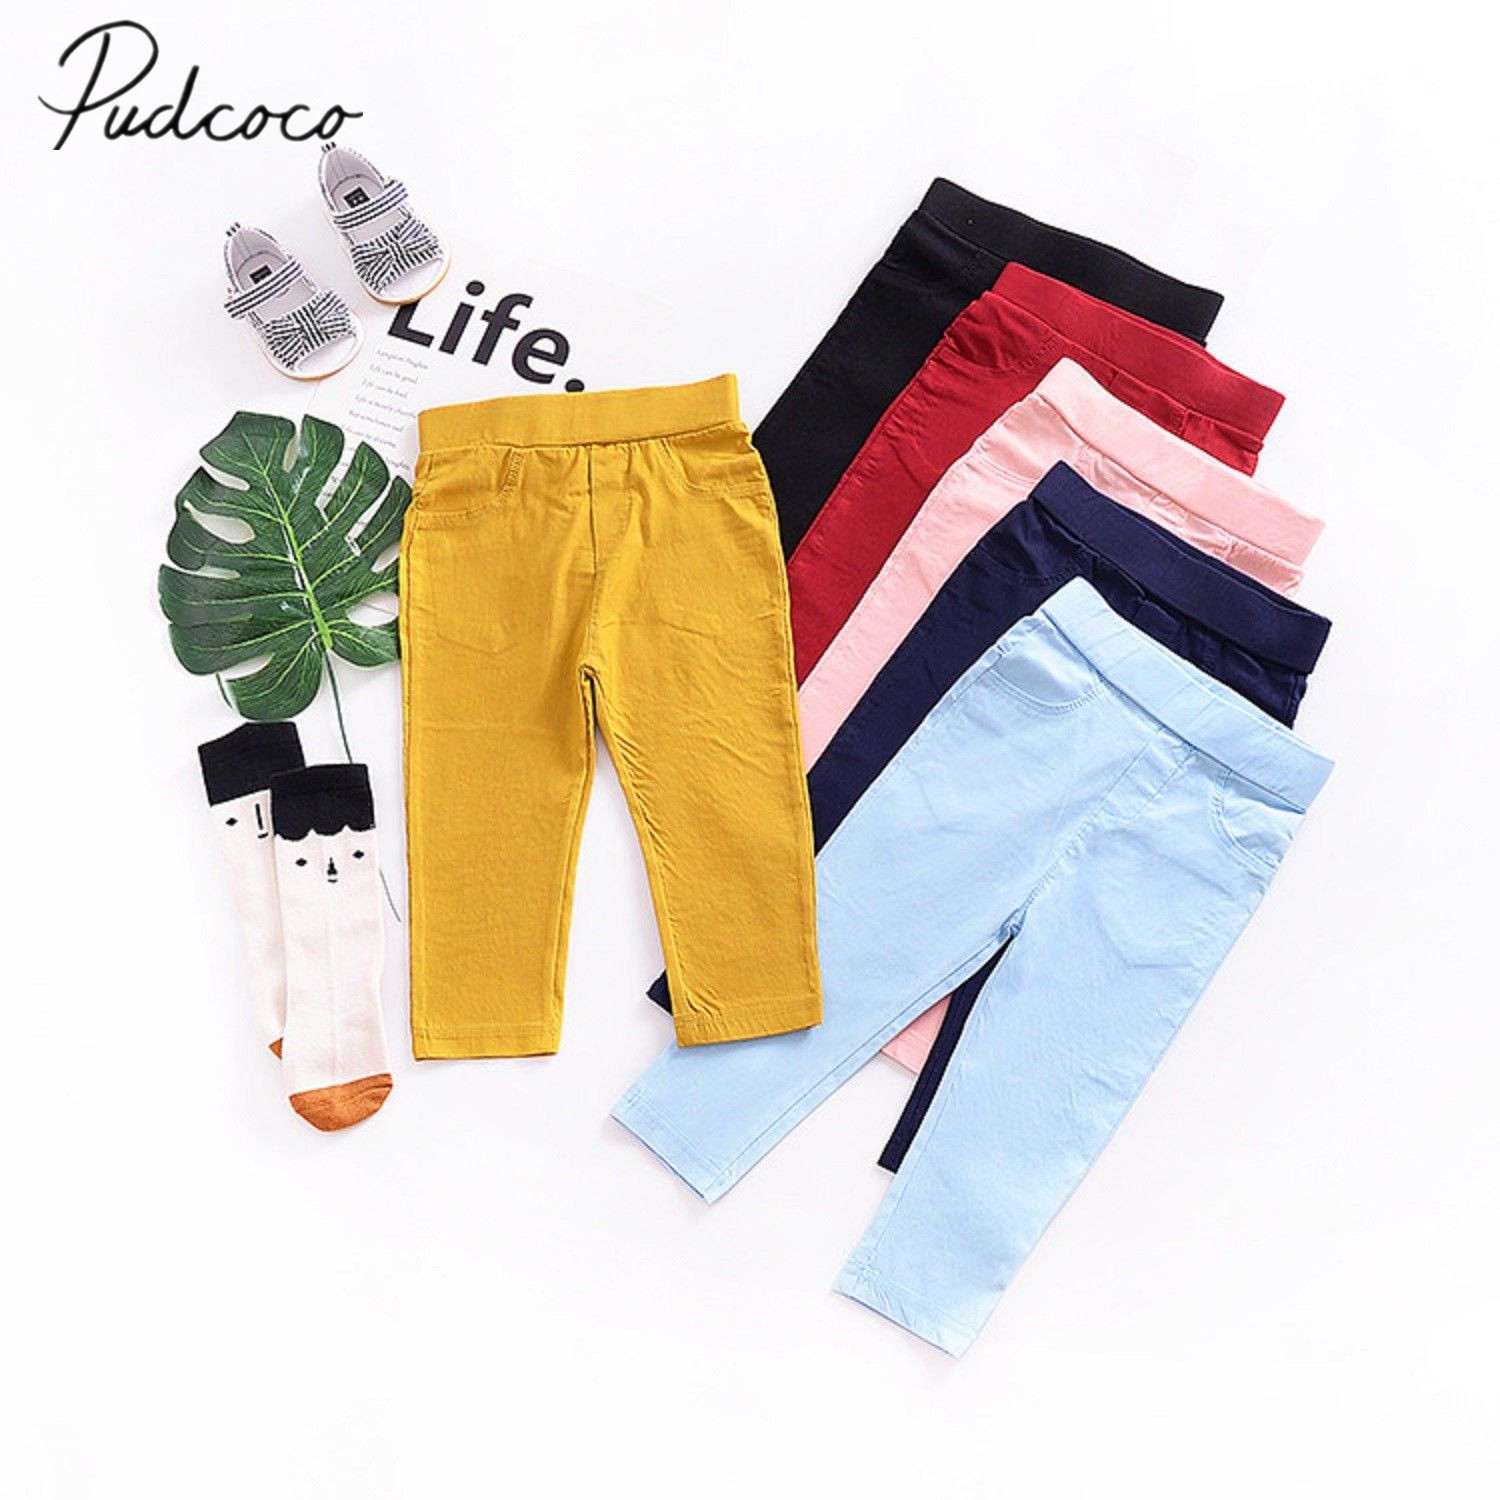 2018 Brand New Toddler Infant Kids Child Baby Boy Girl Stretch Pants Clothes Trousers Slacks Candy Color Casual Bottoms 1-6T candy color slim casual pants